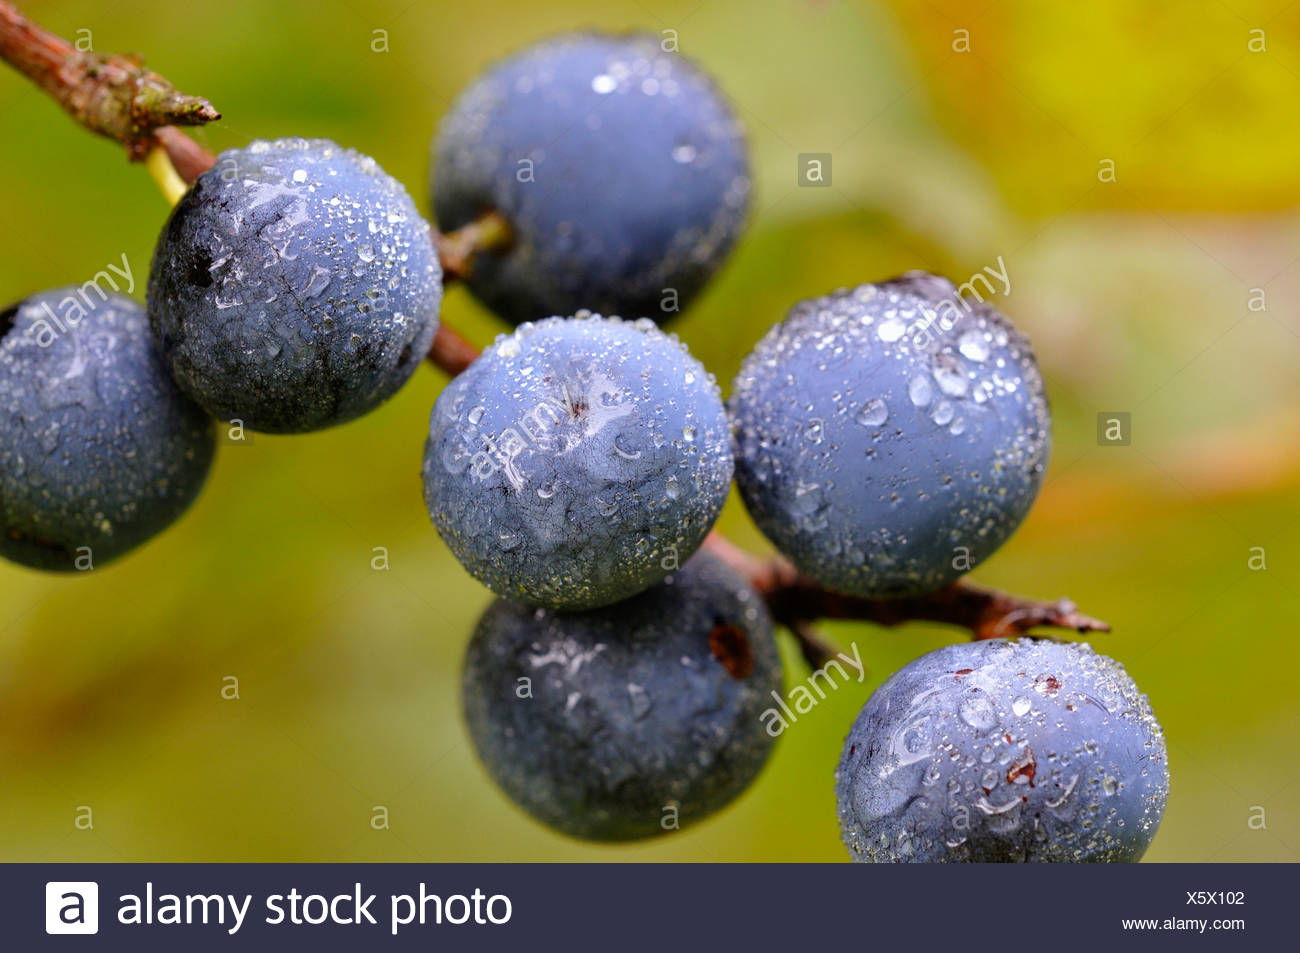 blackthorn, sloe (Prunus spinosa), fruits of the blackthorns, Germany - Stock Image